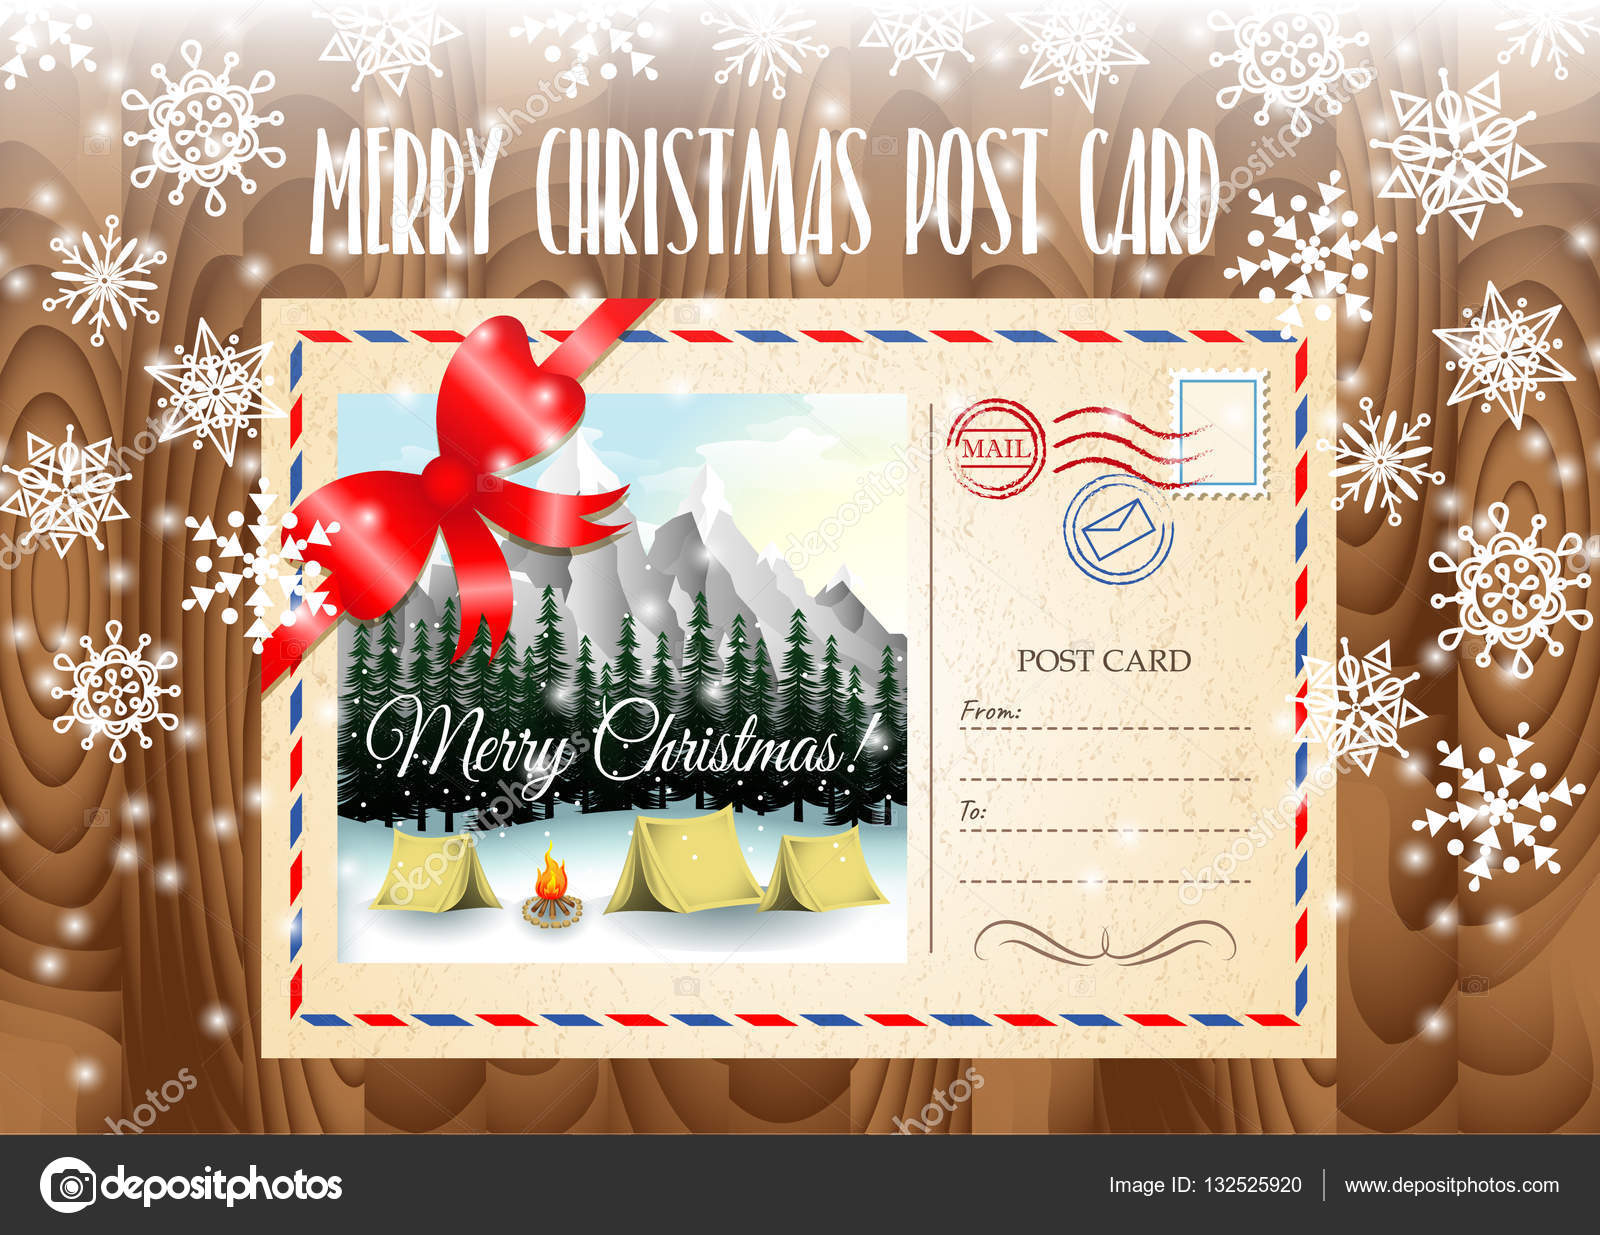 Camping Christmas Cards.Merry Christmas Post Card Design Merry Christmas Post Card